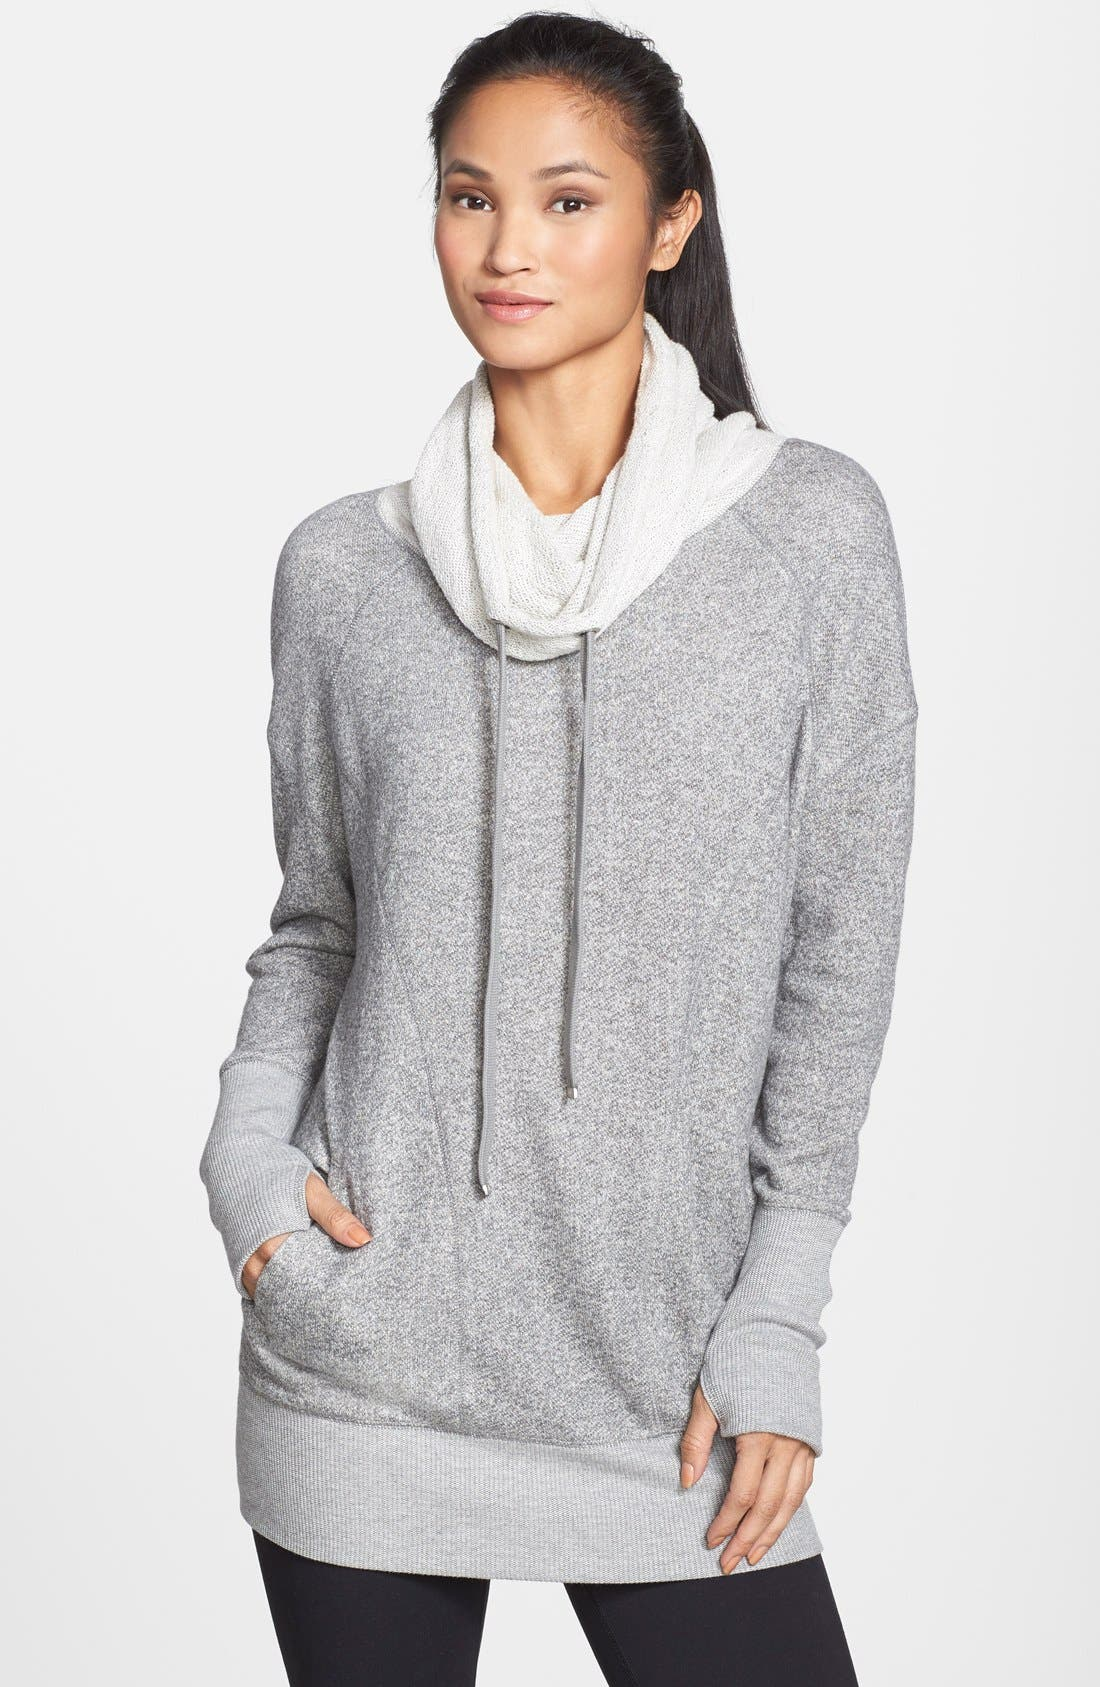 'Serenity' French Terry Sweatshirt,                         Main,                         color, Grey Monument Heather